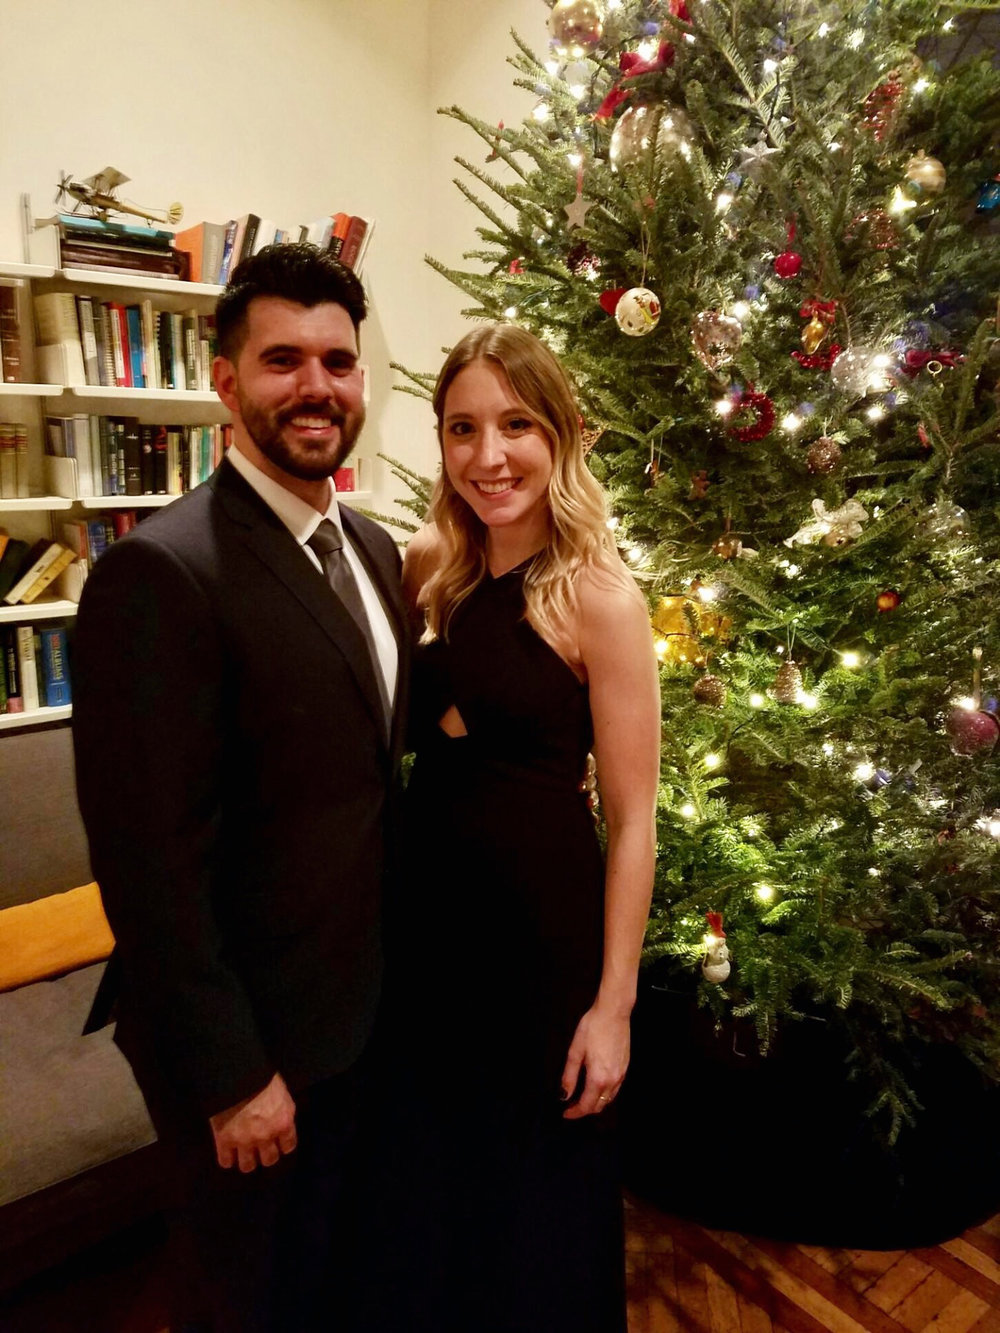 ALL SMILES AT THE HOLIDAY BALL WE ATTENDED IN BROOKLYN HEIGHTS LAST WEEKEND.